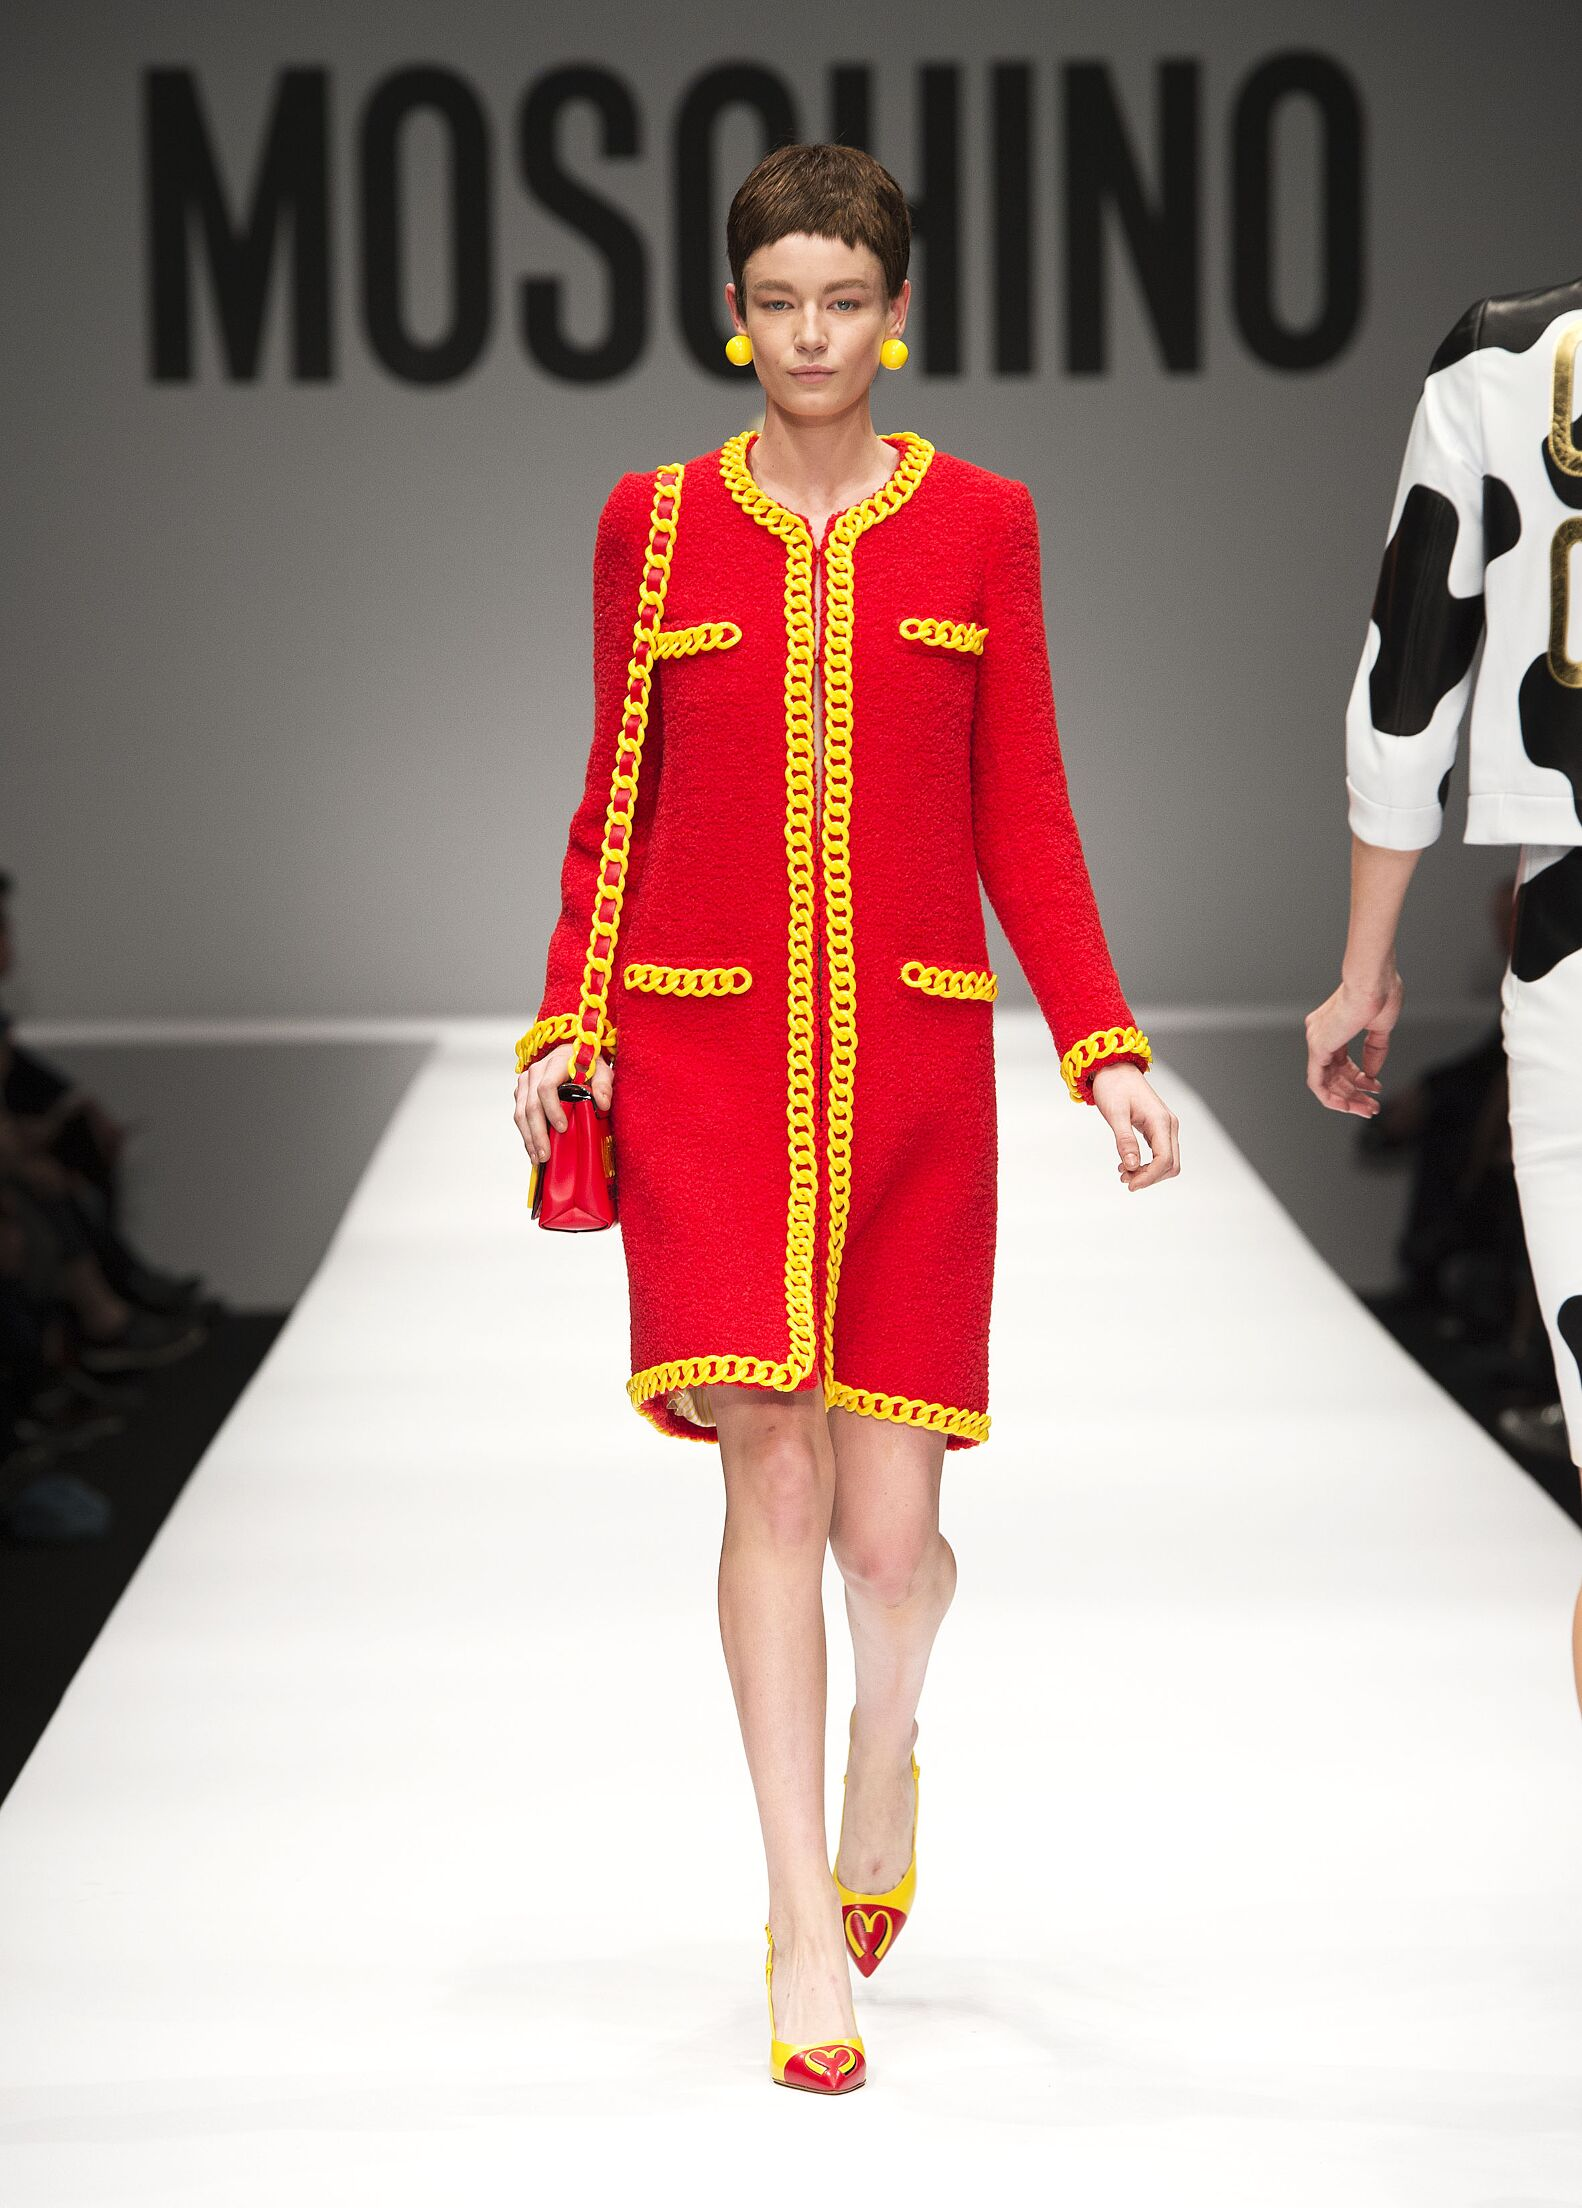 MOSCHINO FALL WINTER 2014-15 WOMEN'S COLLECTION